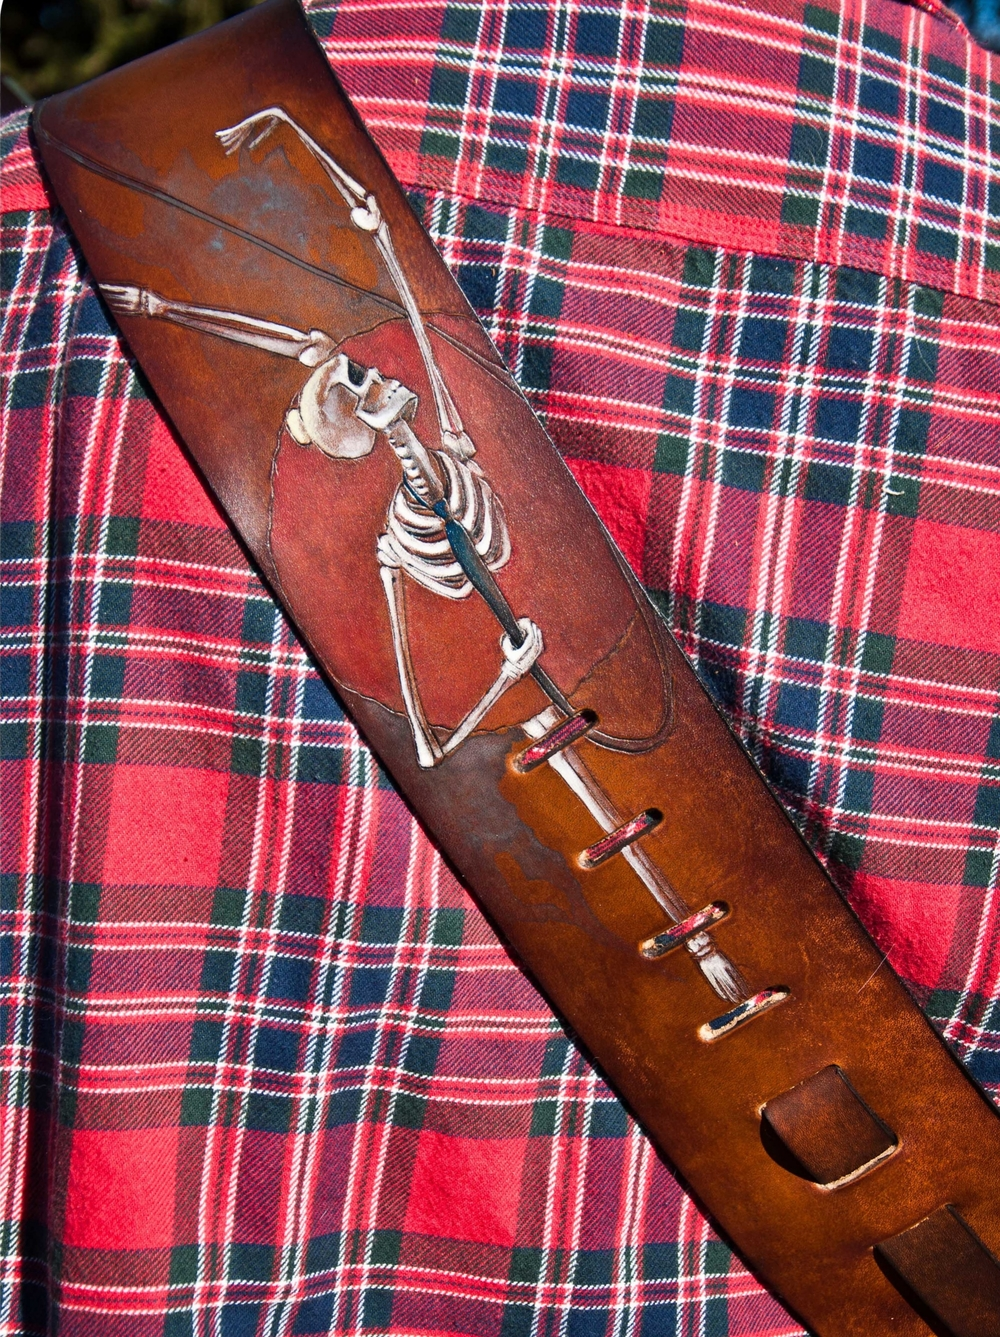 skeleton-guitar-strap-7.jpg